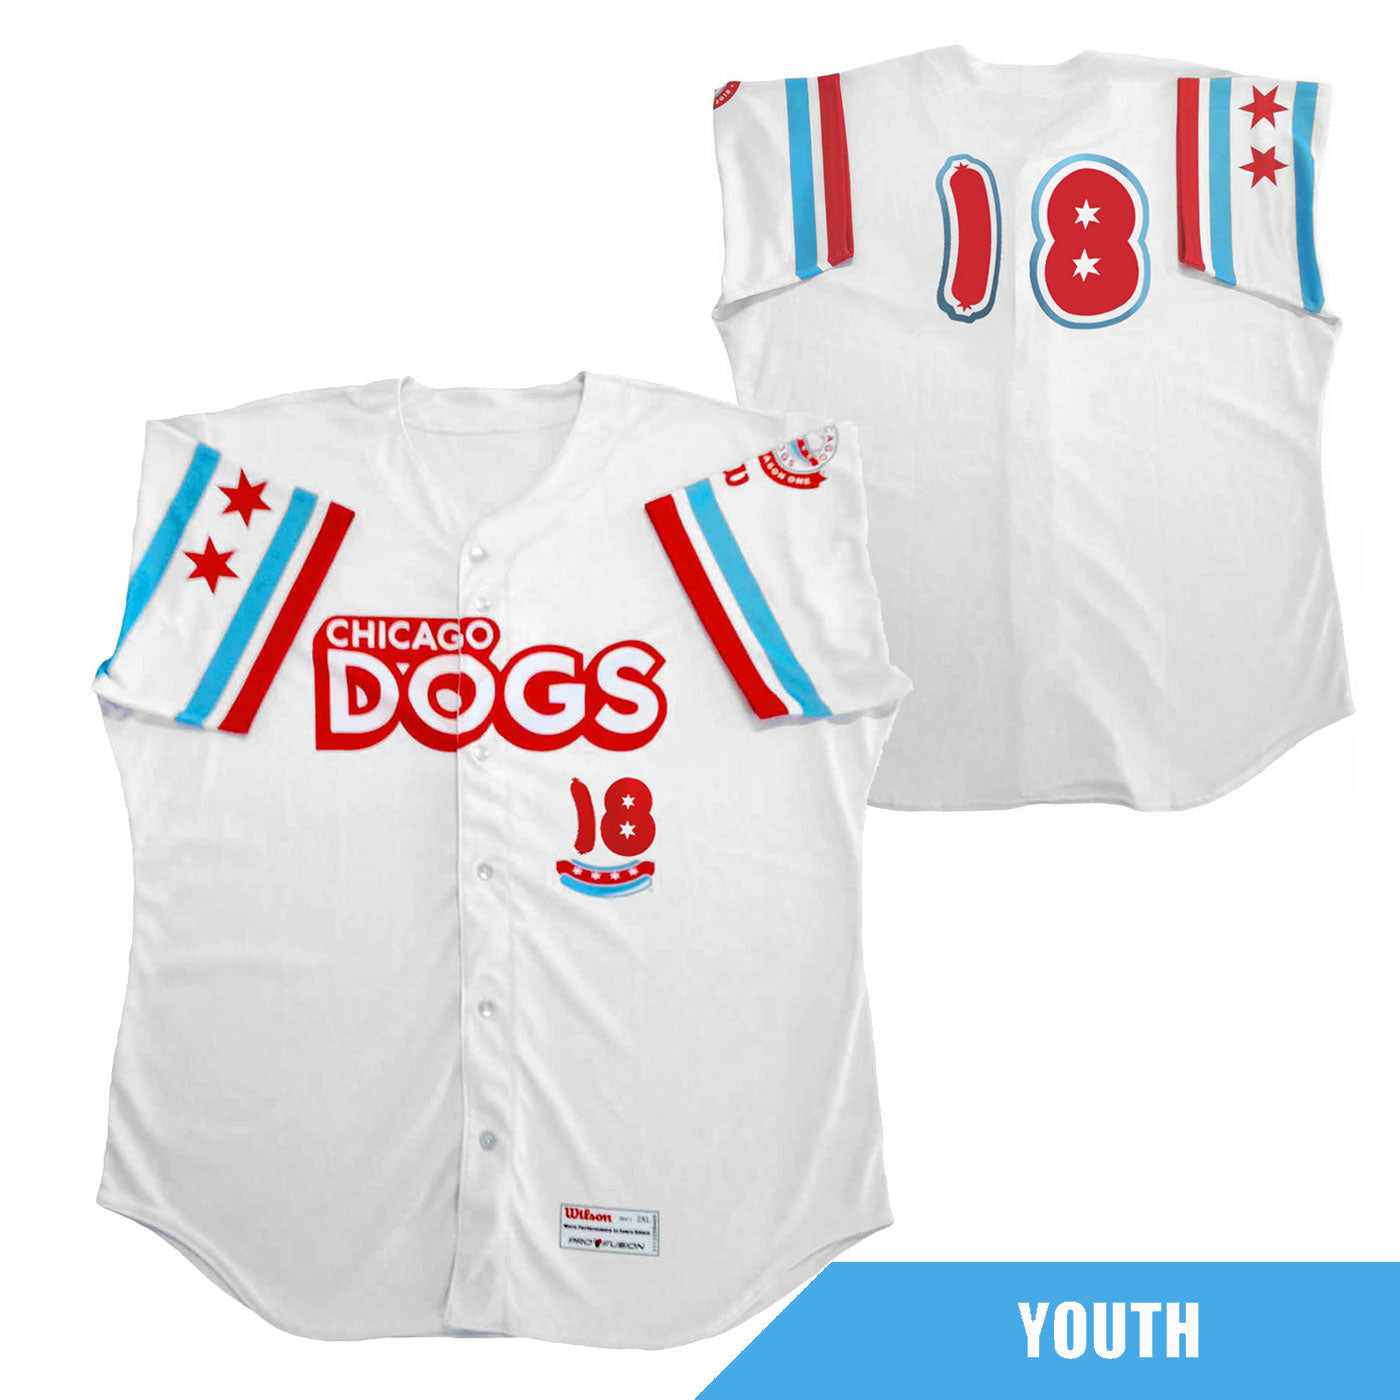 Chicago Dogs Wilson Pro Fusion Youth #18 Replica Home Jersey - White - Chicago Dogs Team Store